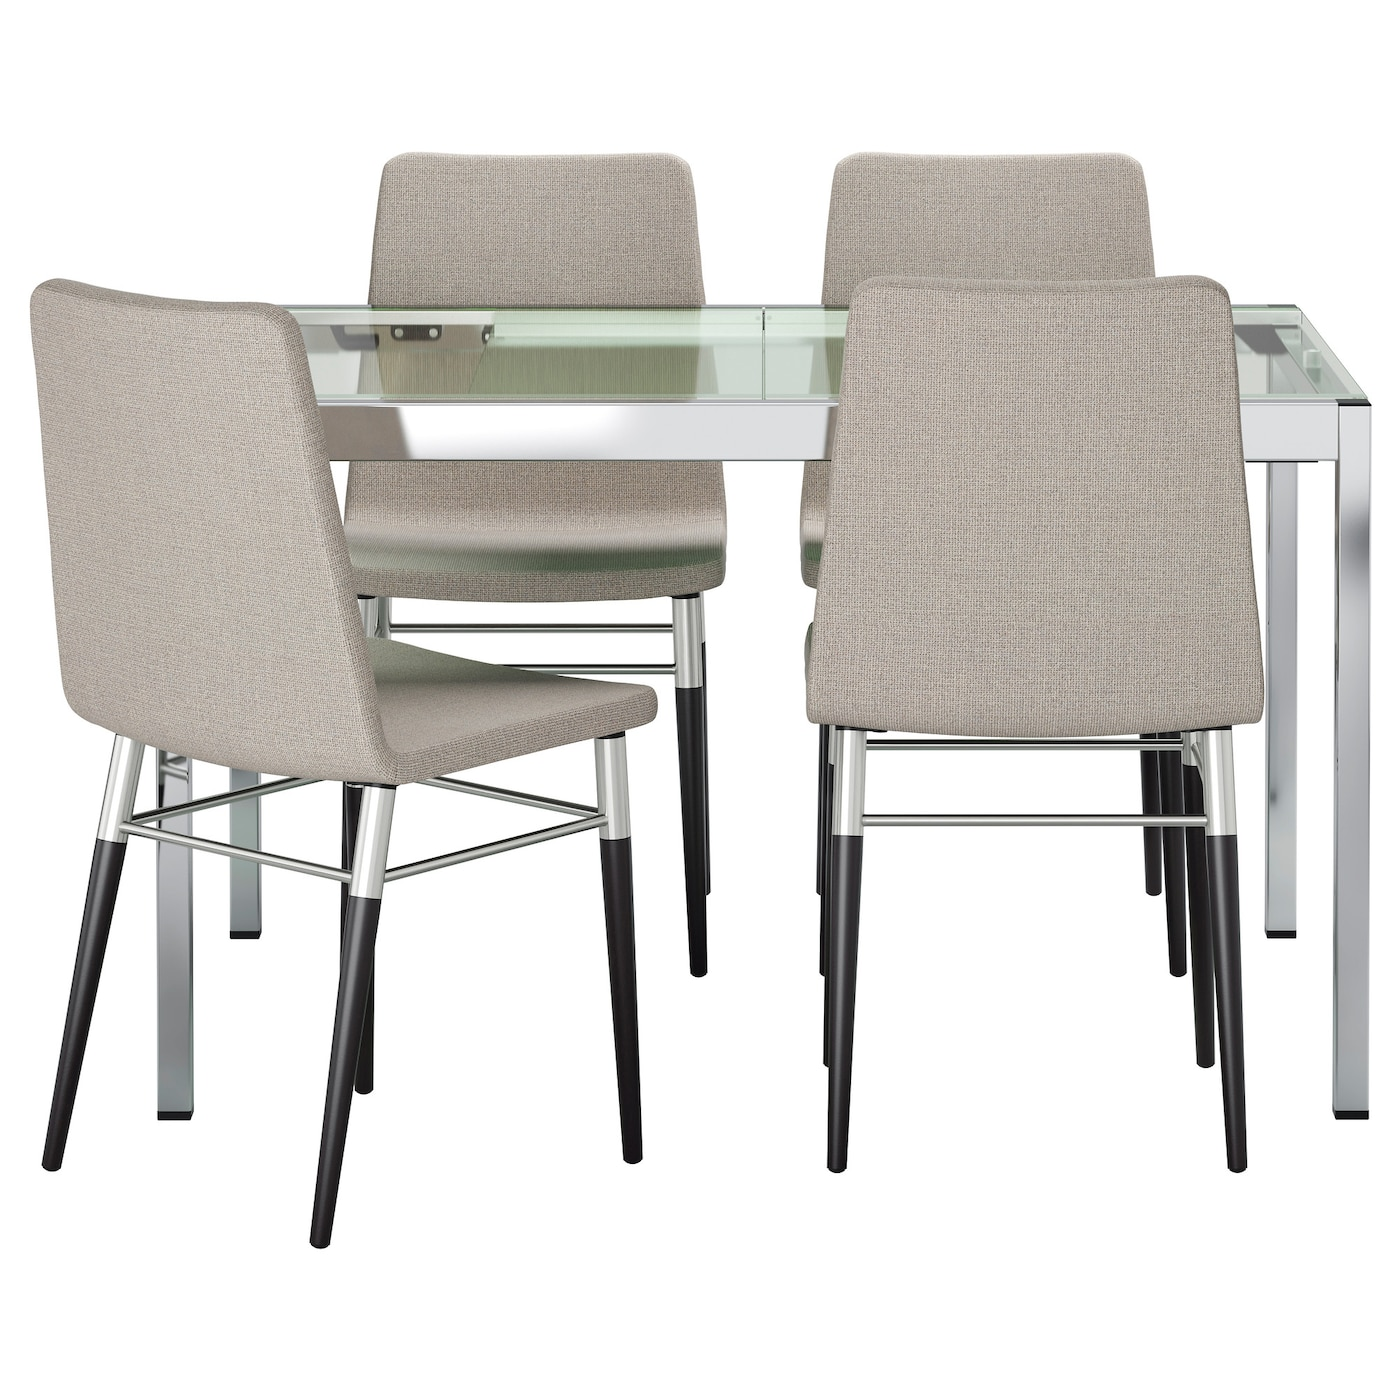 Preben glivarp table and 4 chairs transparent ten light for Table 4 personnes ikea